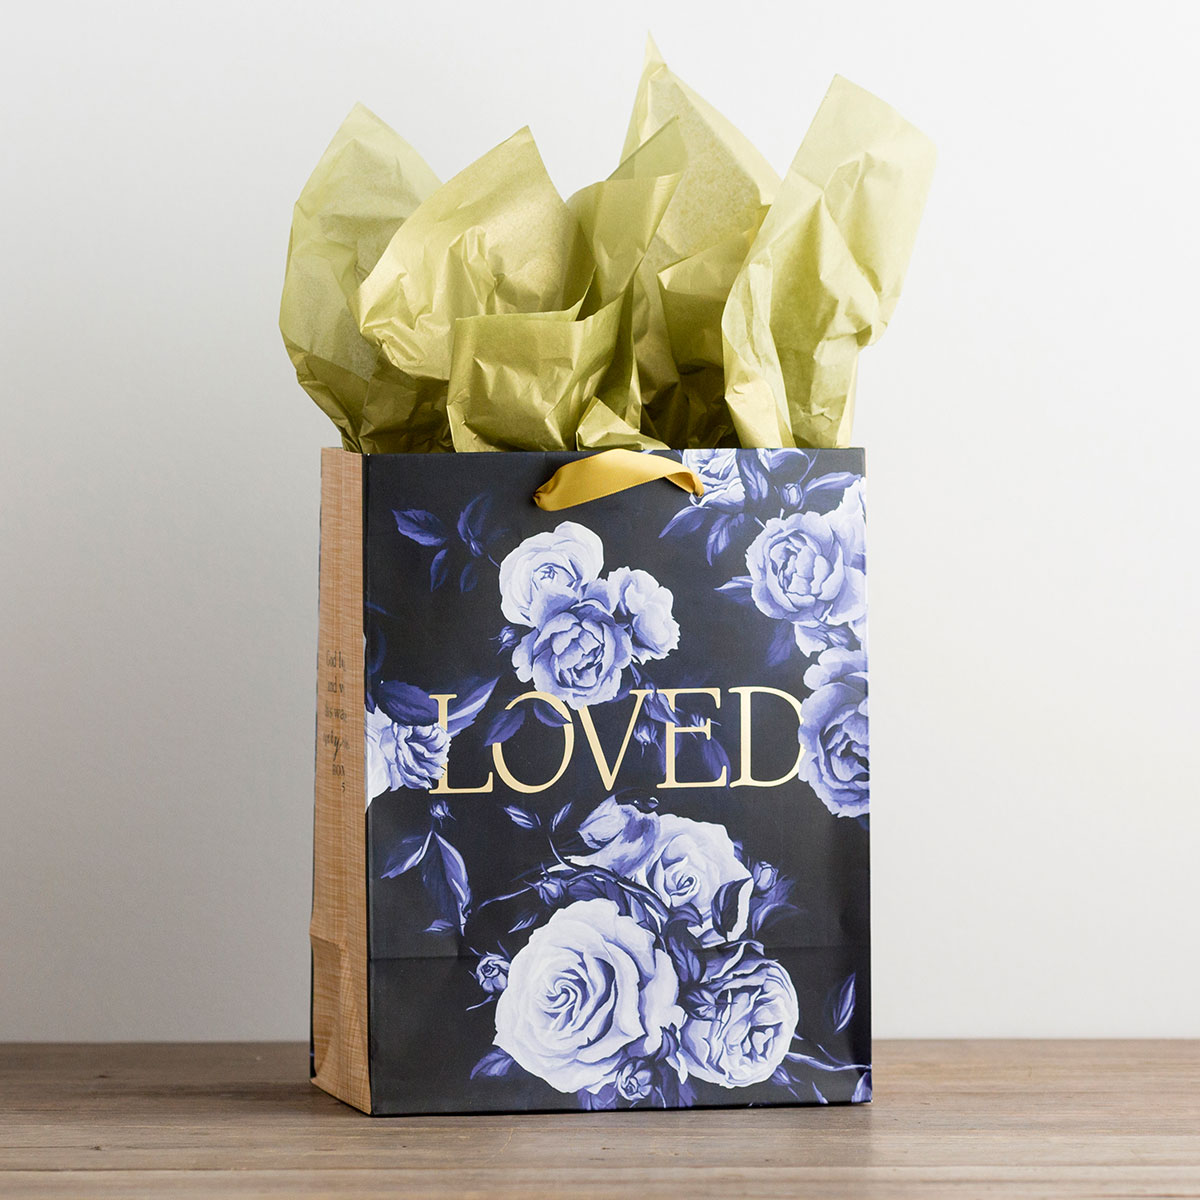 Loved - Medium Gift Bag with Tissue